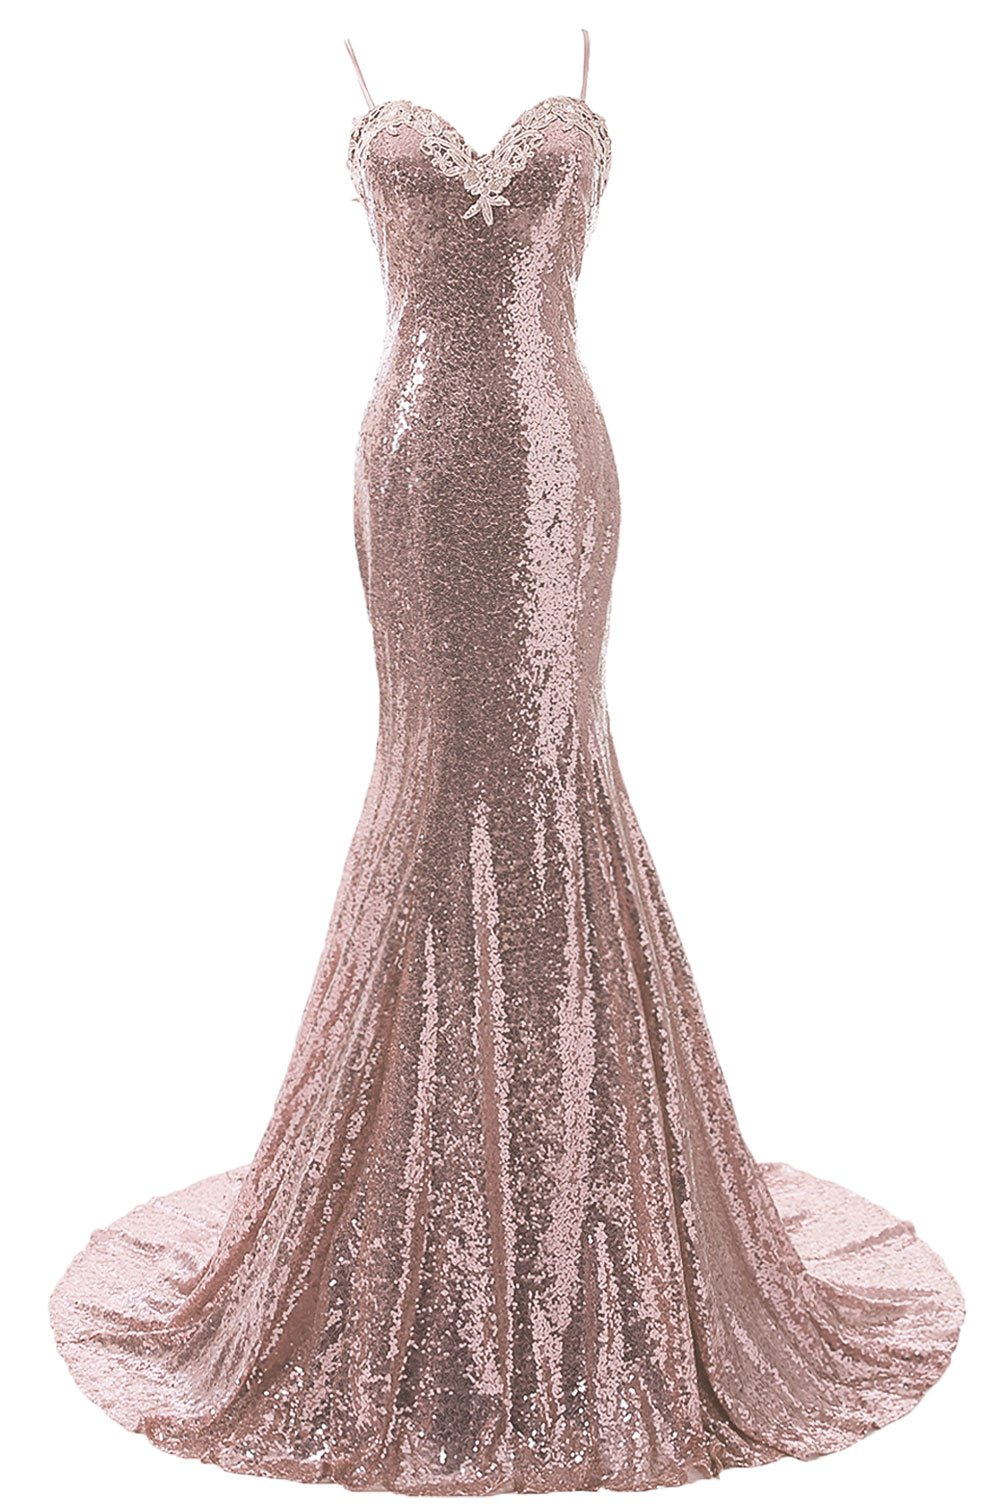 28afedc1f47b ... Women s Straps Mermaid Prom Dress Open Back Sequins Bridesmaid Dresses  Rose Gold US 2.   